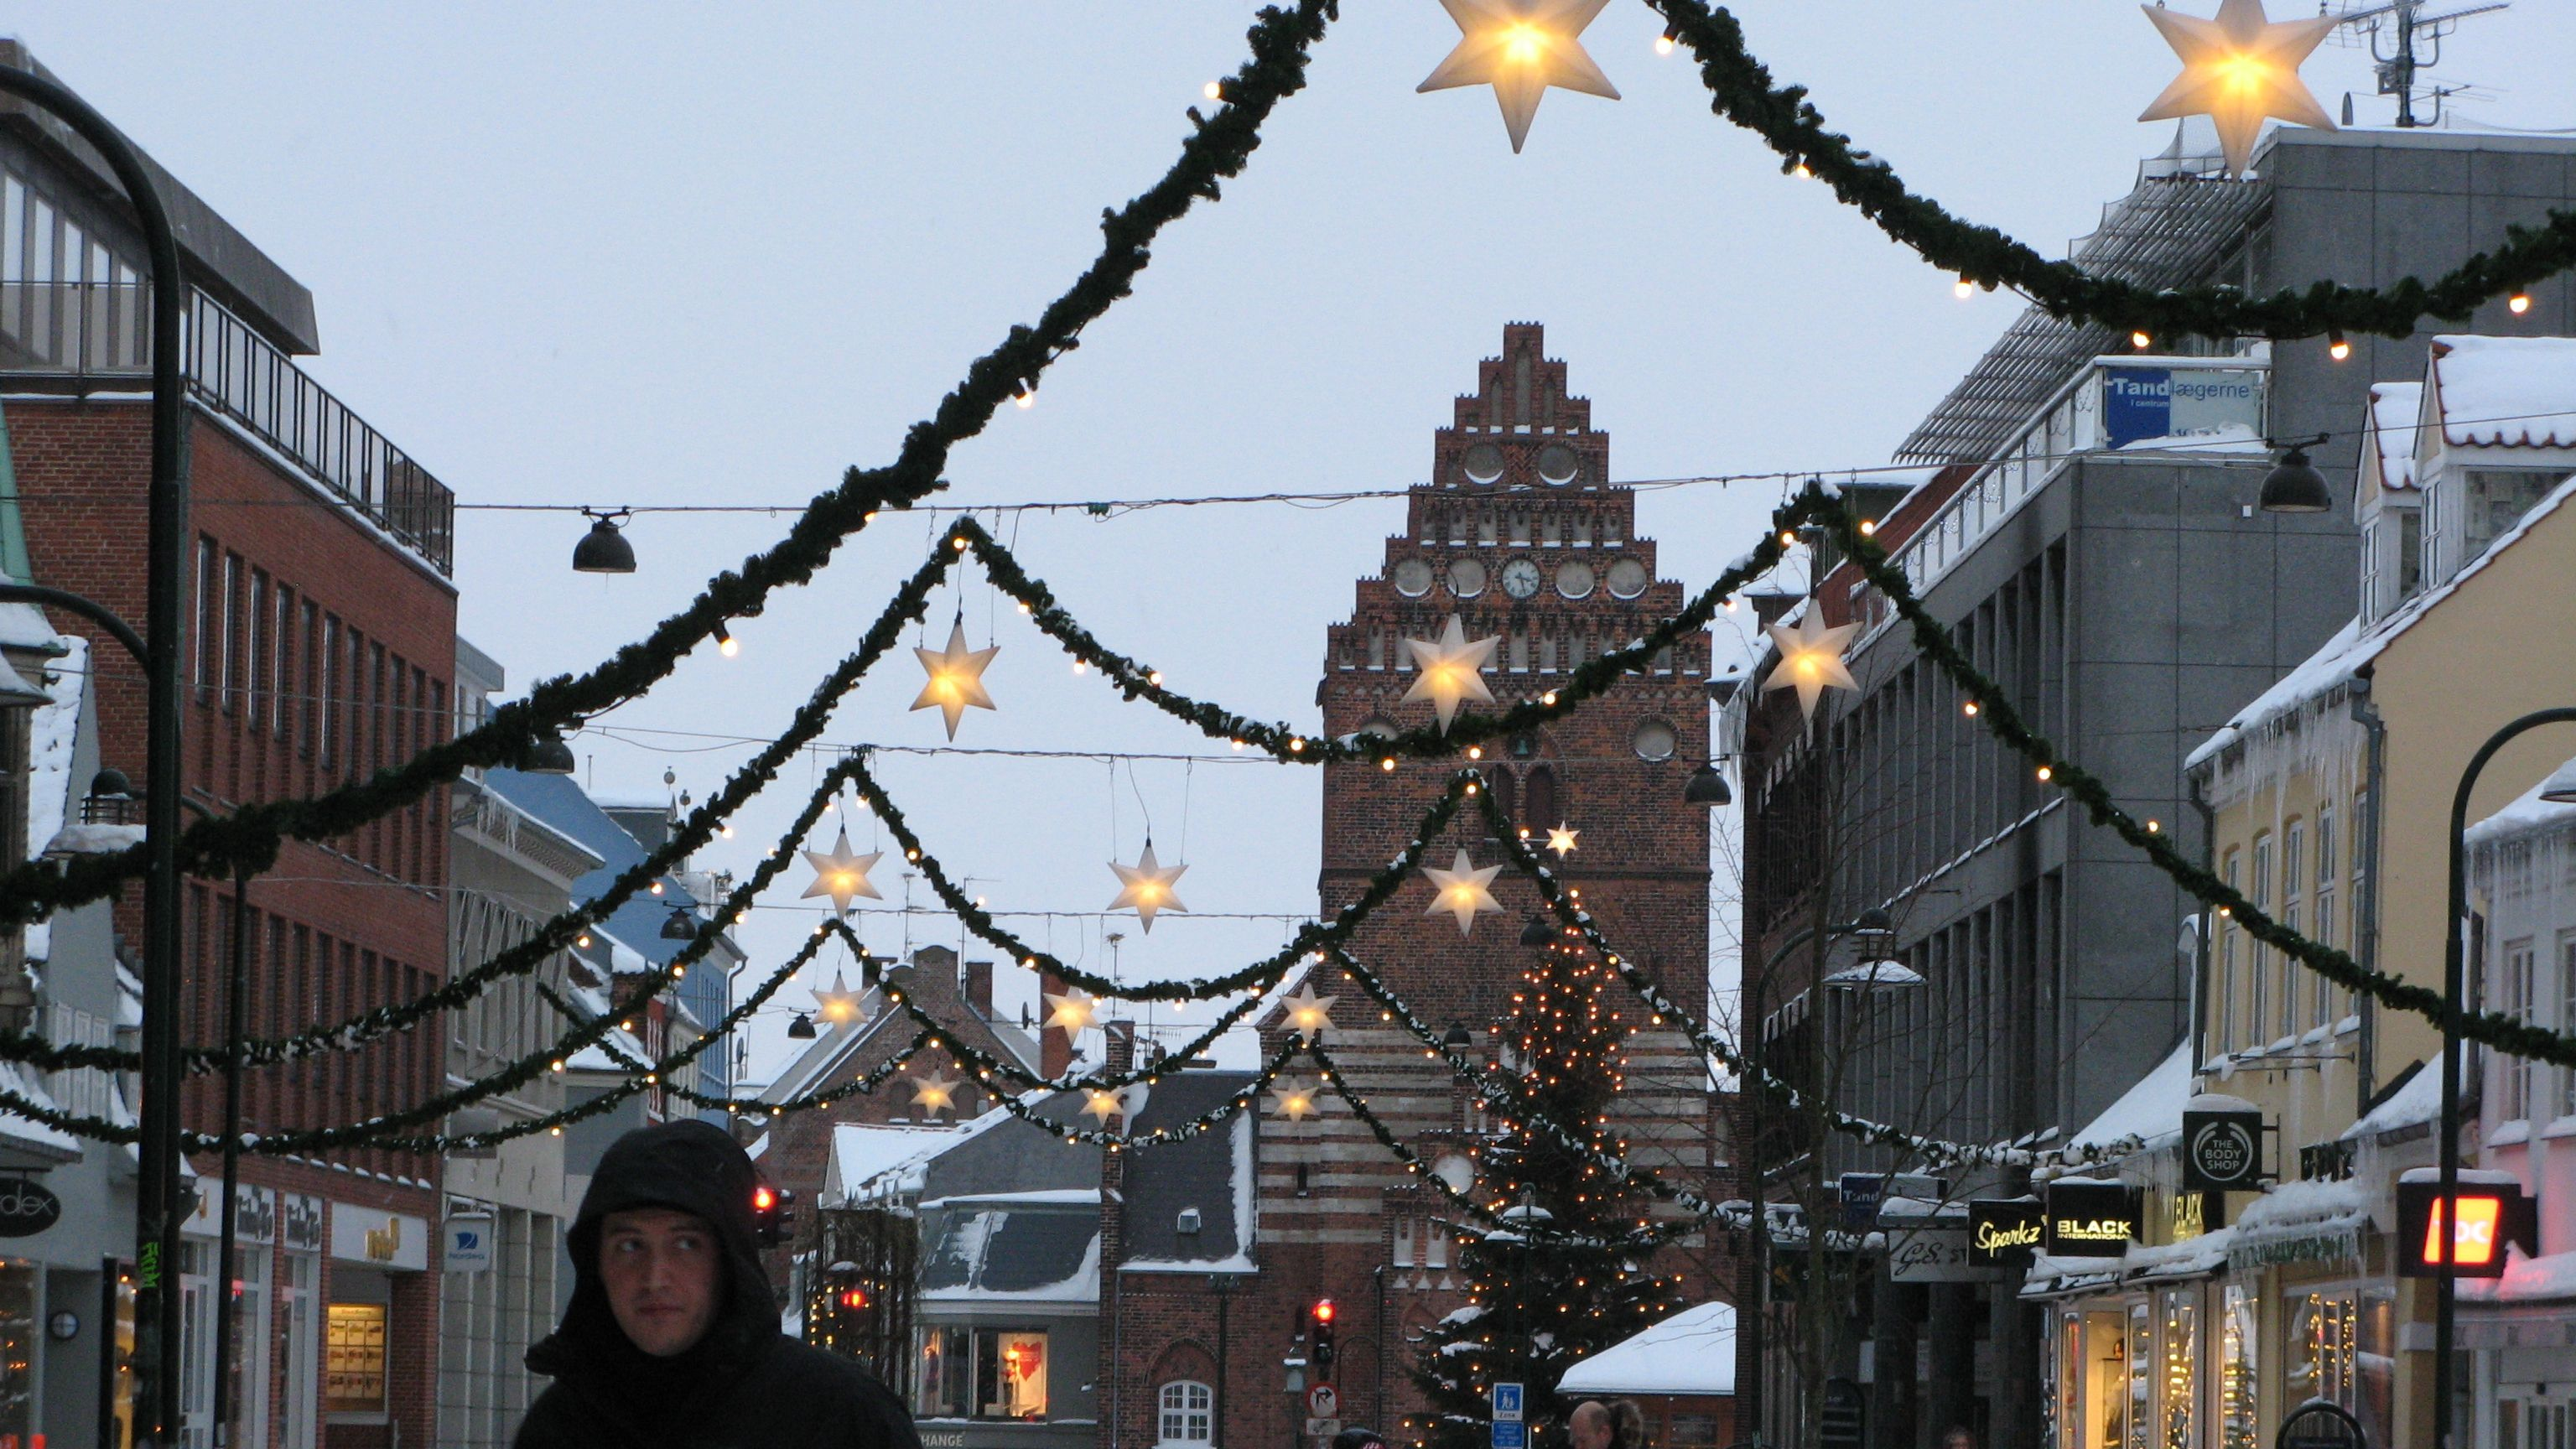 Denmark streets decorated for the holidays